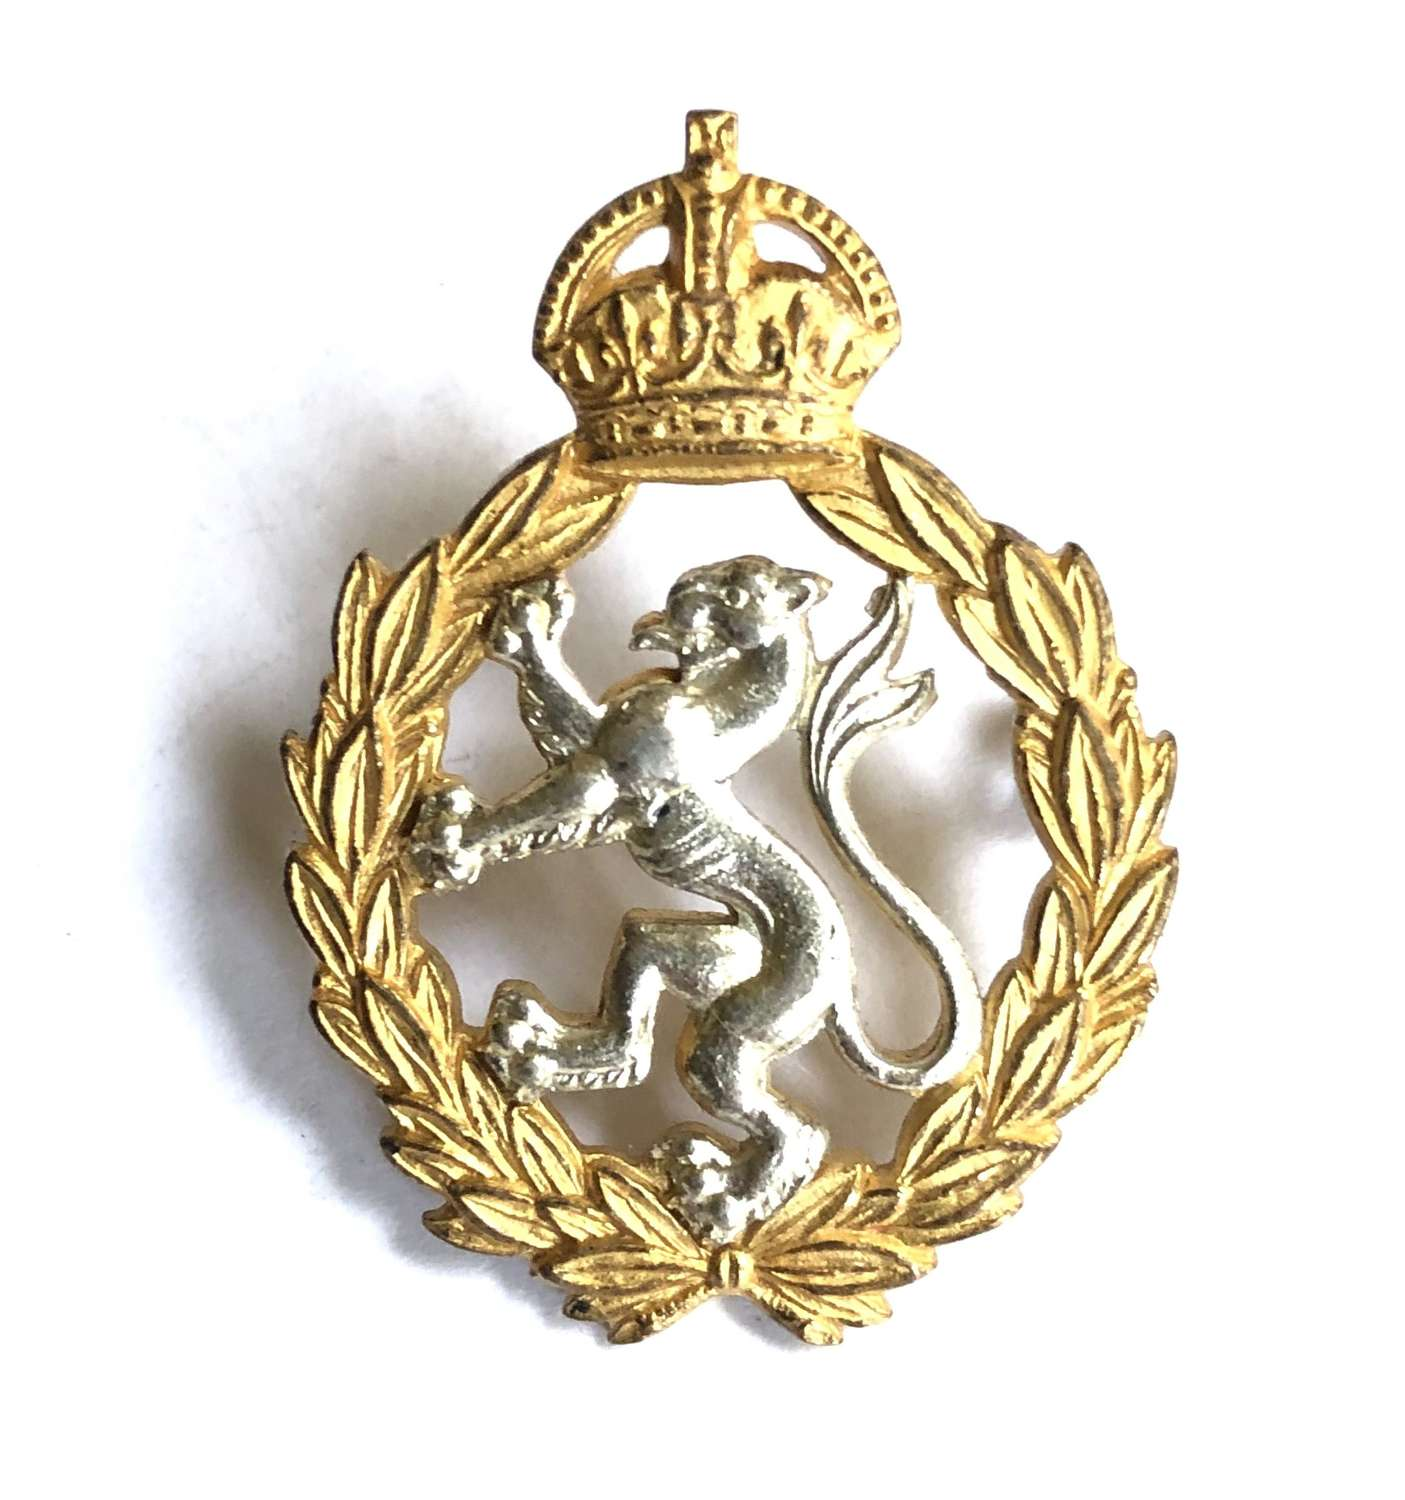 Womens Royal Army Corps WRAC Officer's cap badge by Firmin